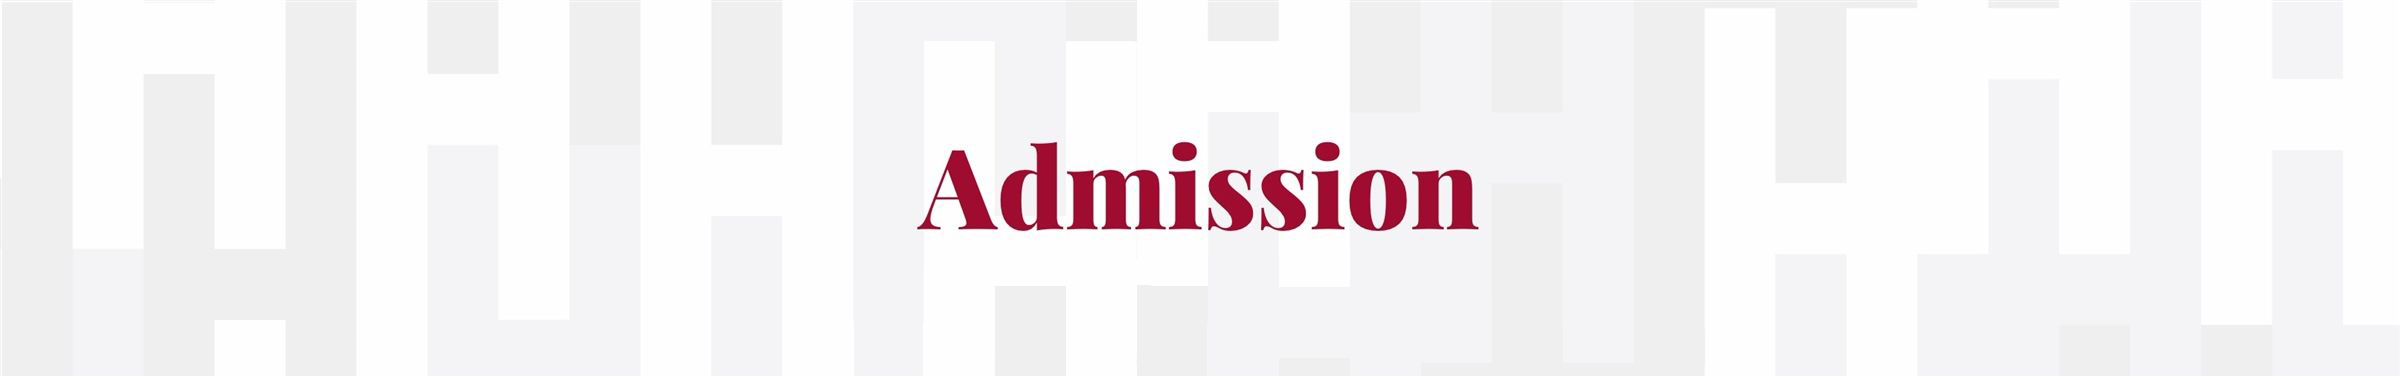 Admission Text Only